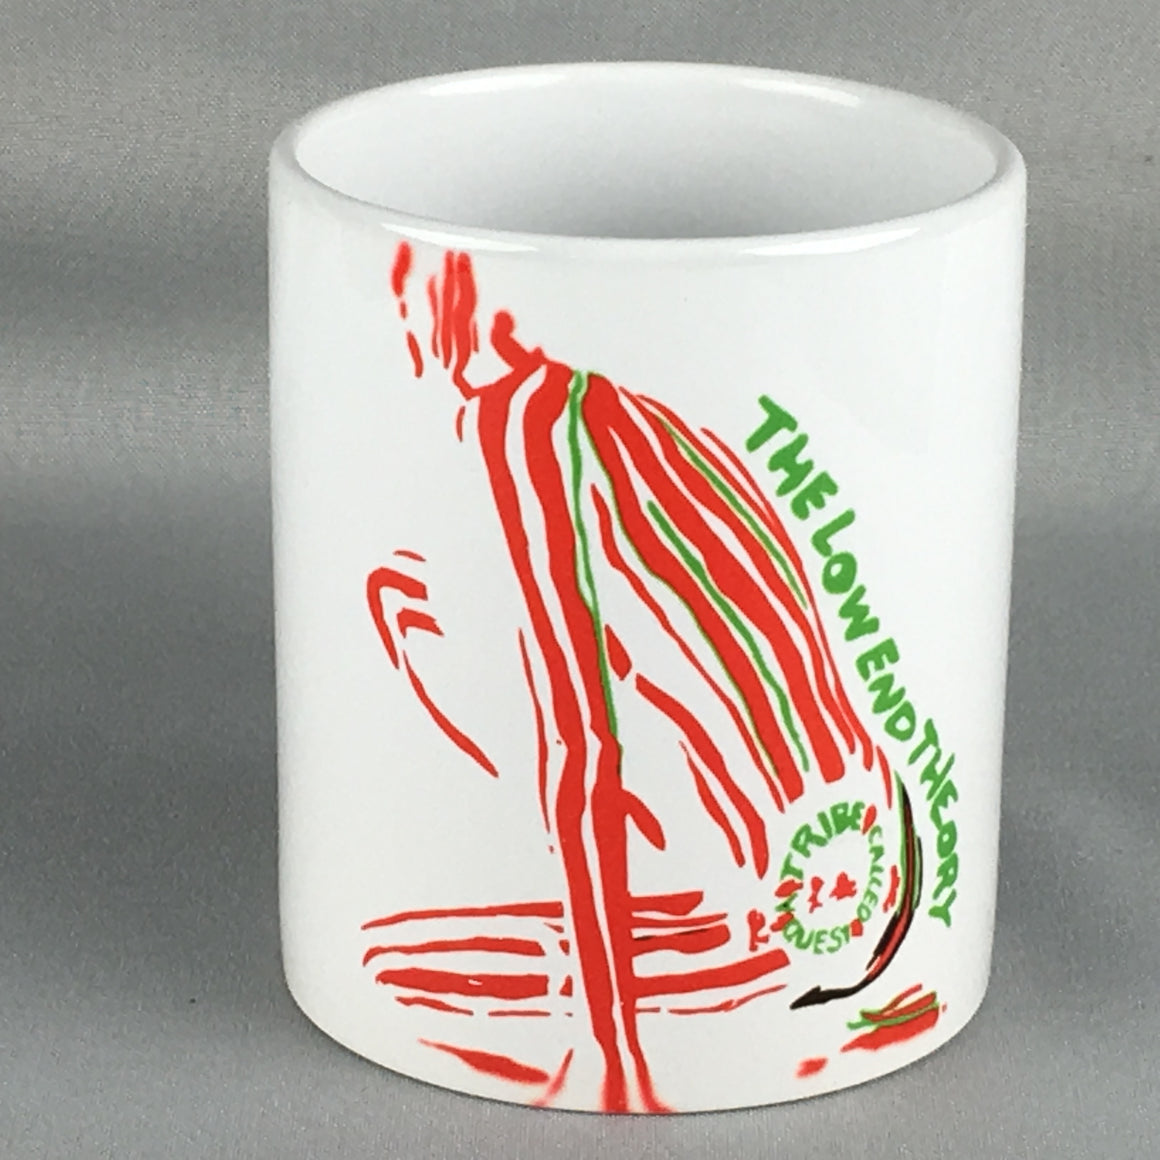 Tribe Called Quest The Low End Theory Coffee Mug - Unique Gift!